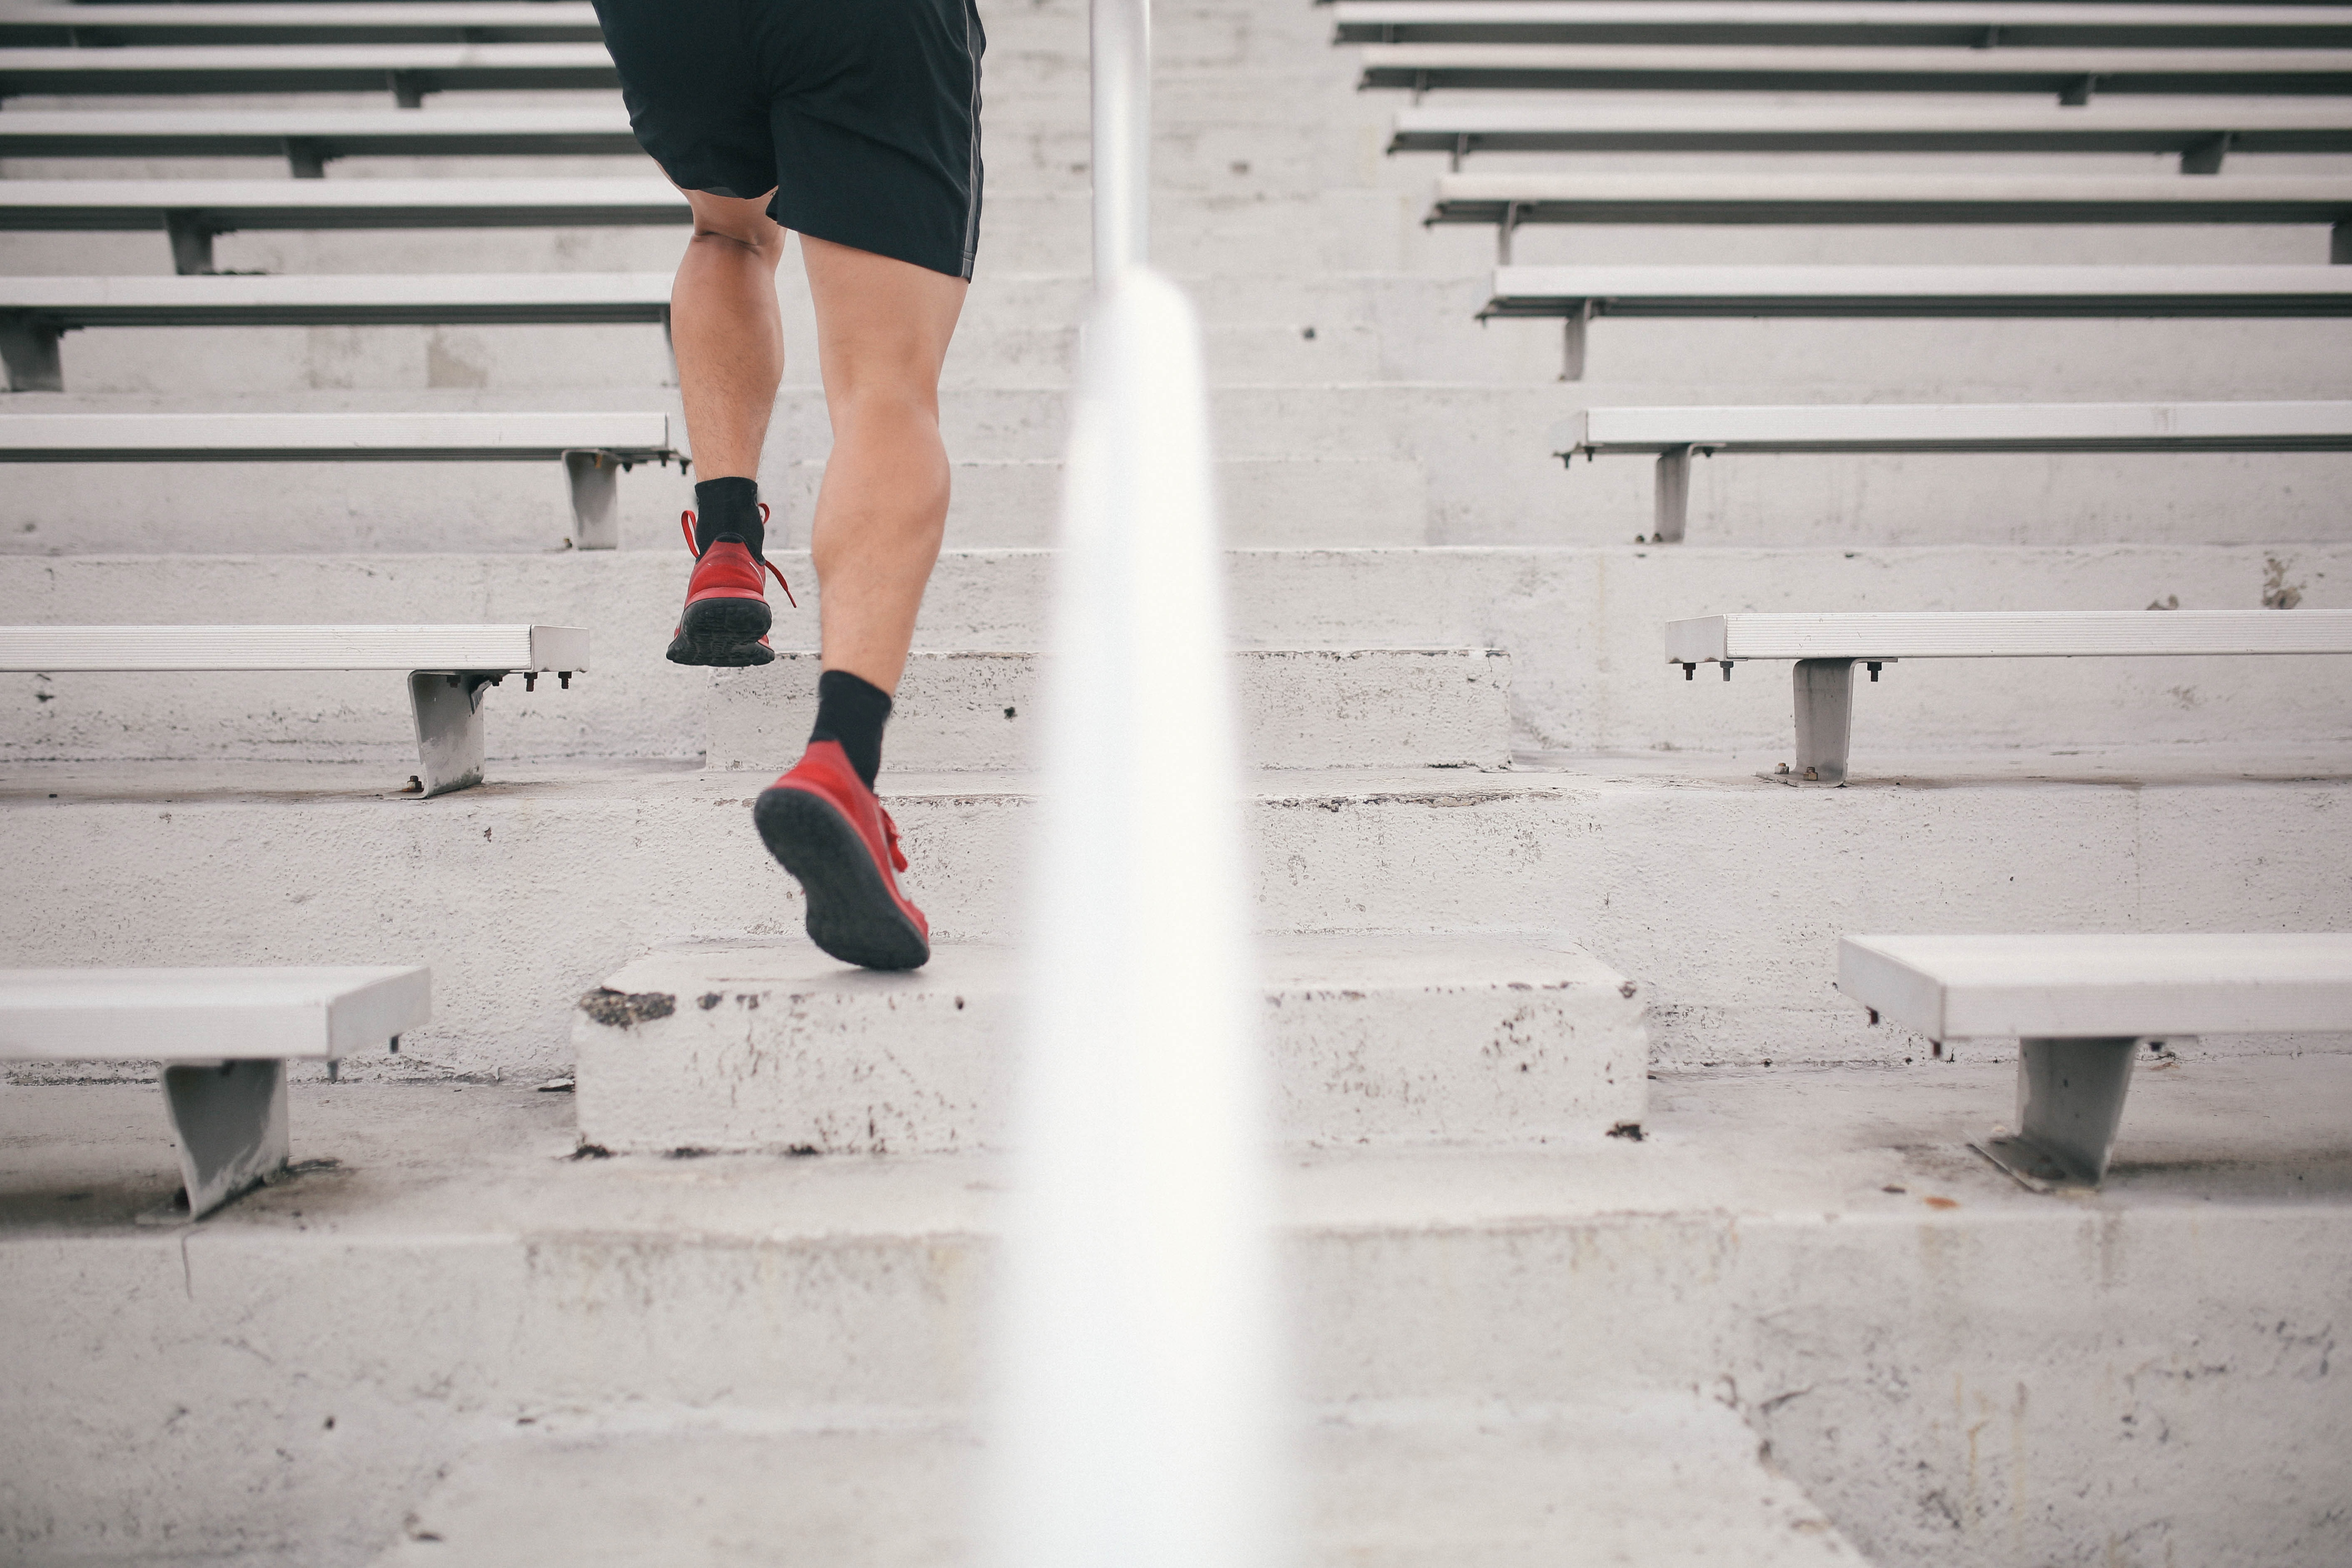 Tampa therapist, tampa counselor, benefits of exercise, exercise and mental health, carrollwood counselor, counseling carrollwood, therapy in carrollwood, carrollwood therapy